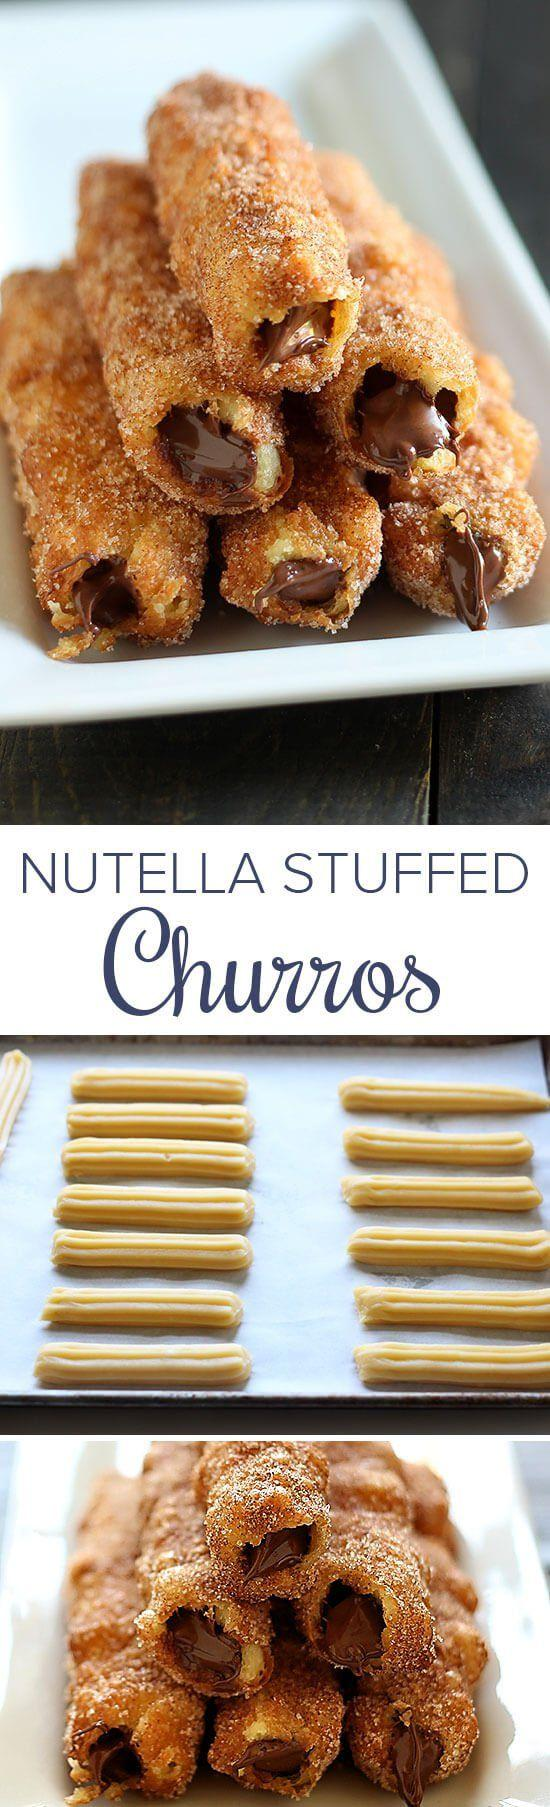 Mariage - Nutella Stuffed Churros